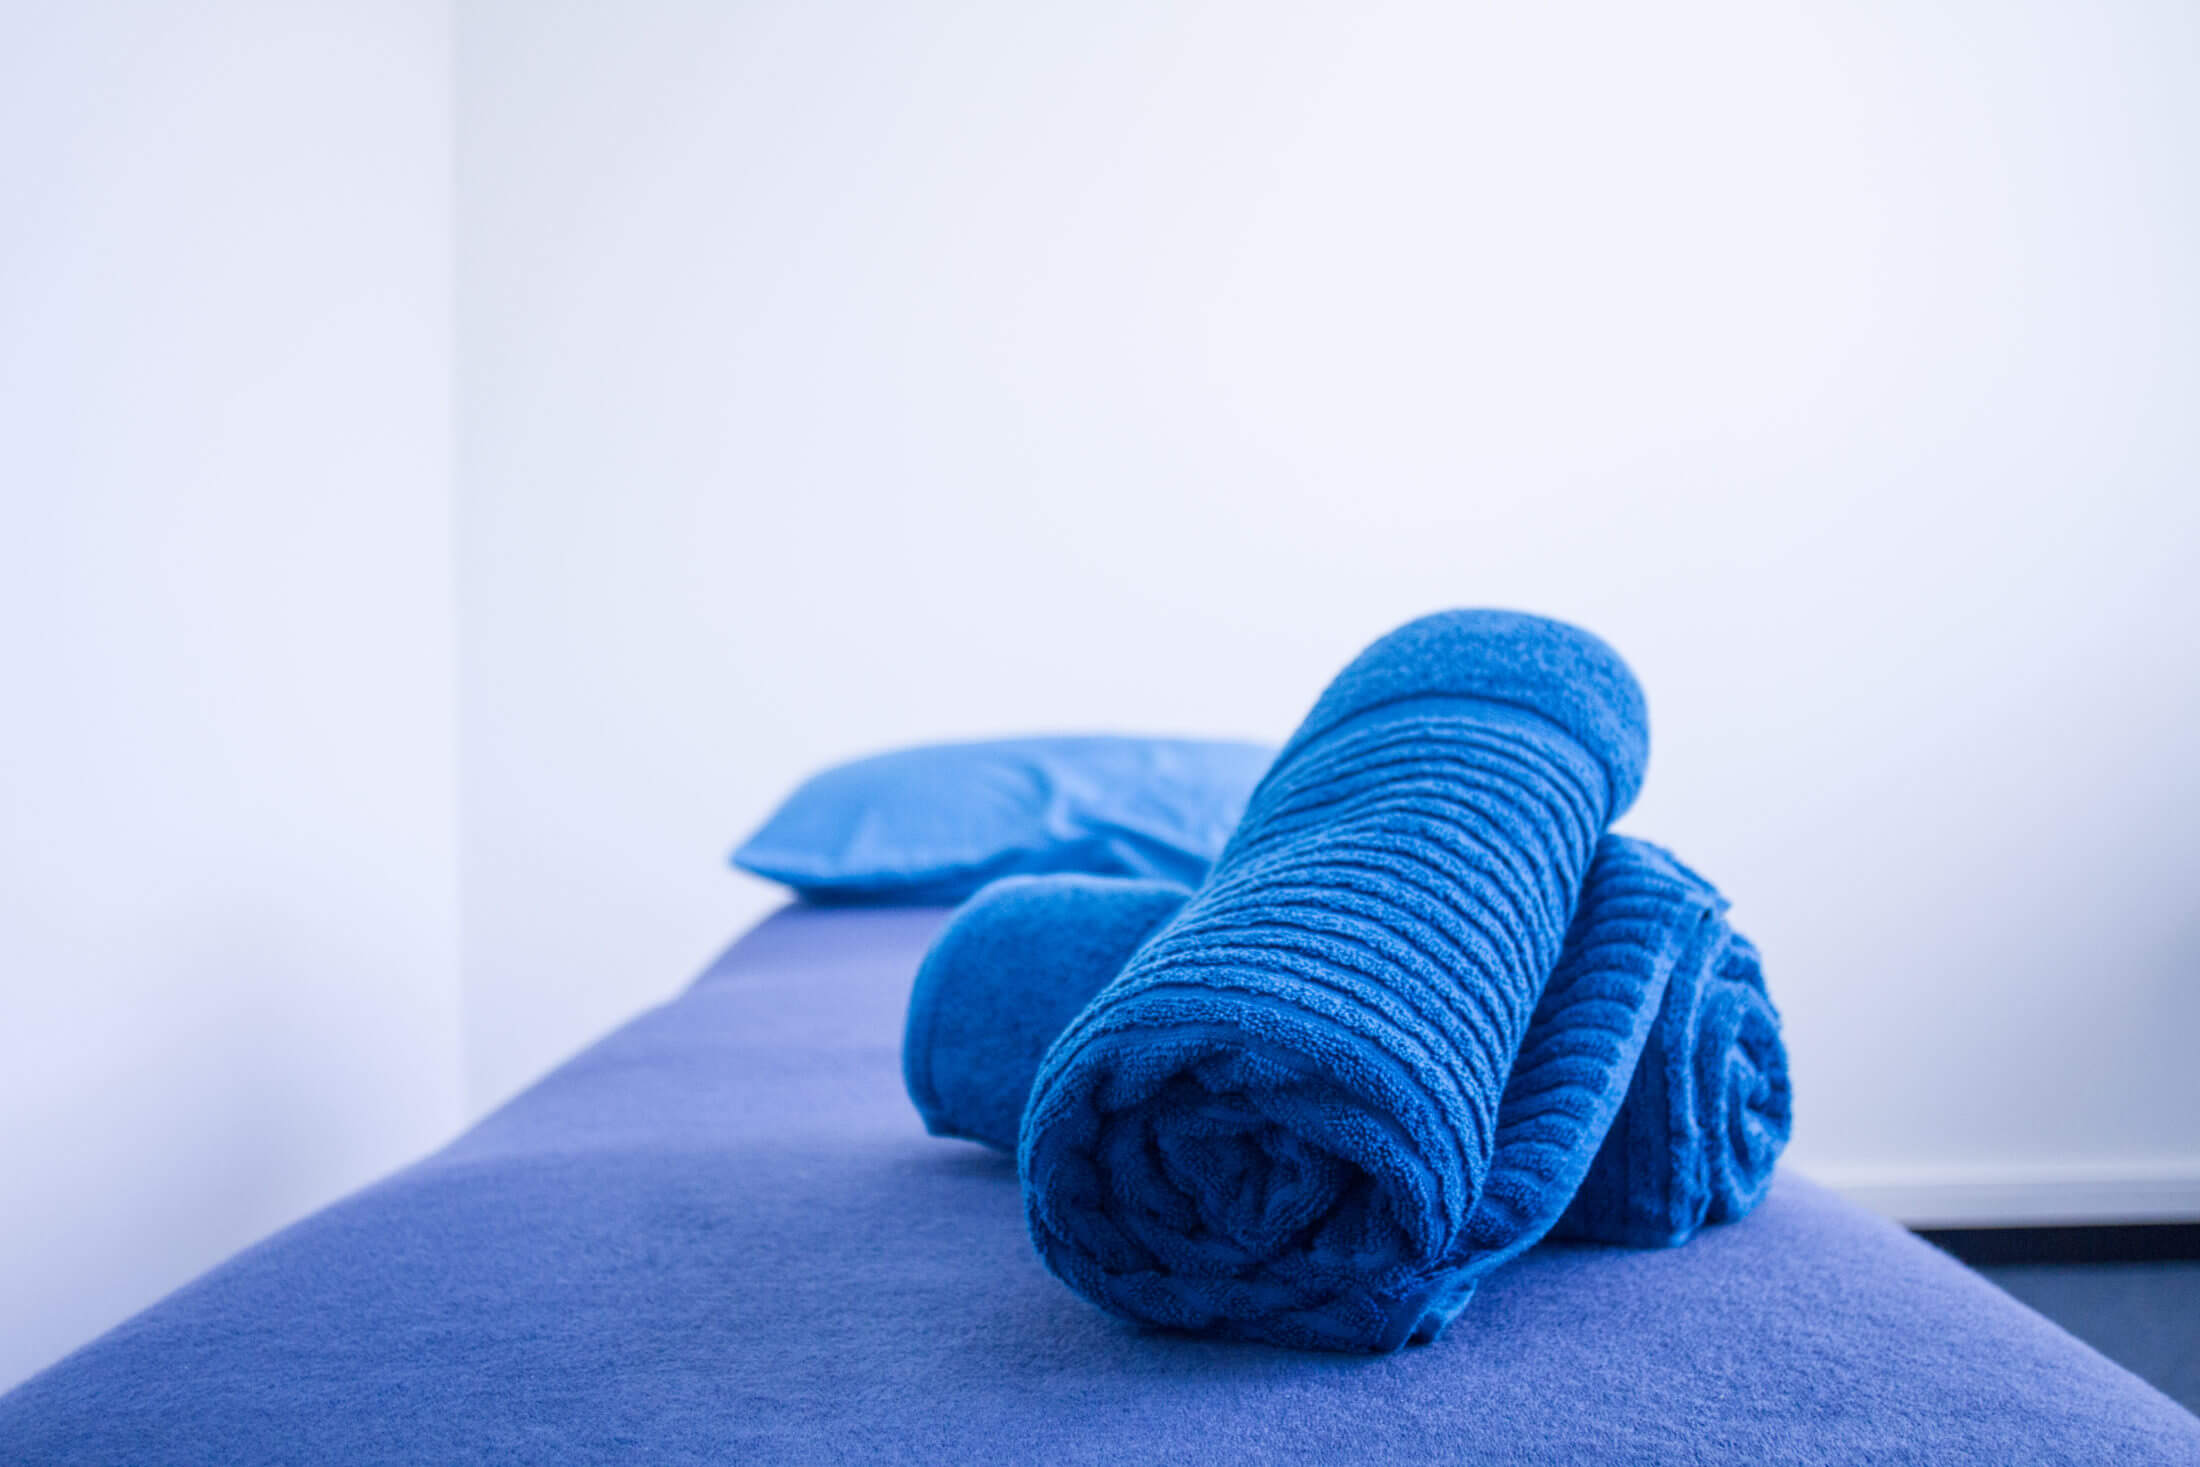 Blue colored bed with blue pillow and the rolled blue colored towel is placed on top in the bed.